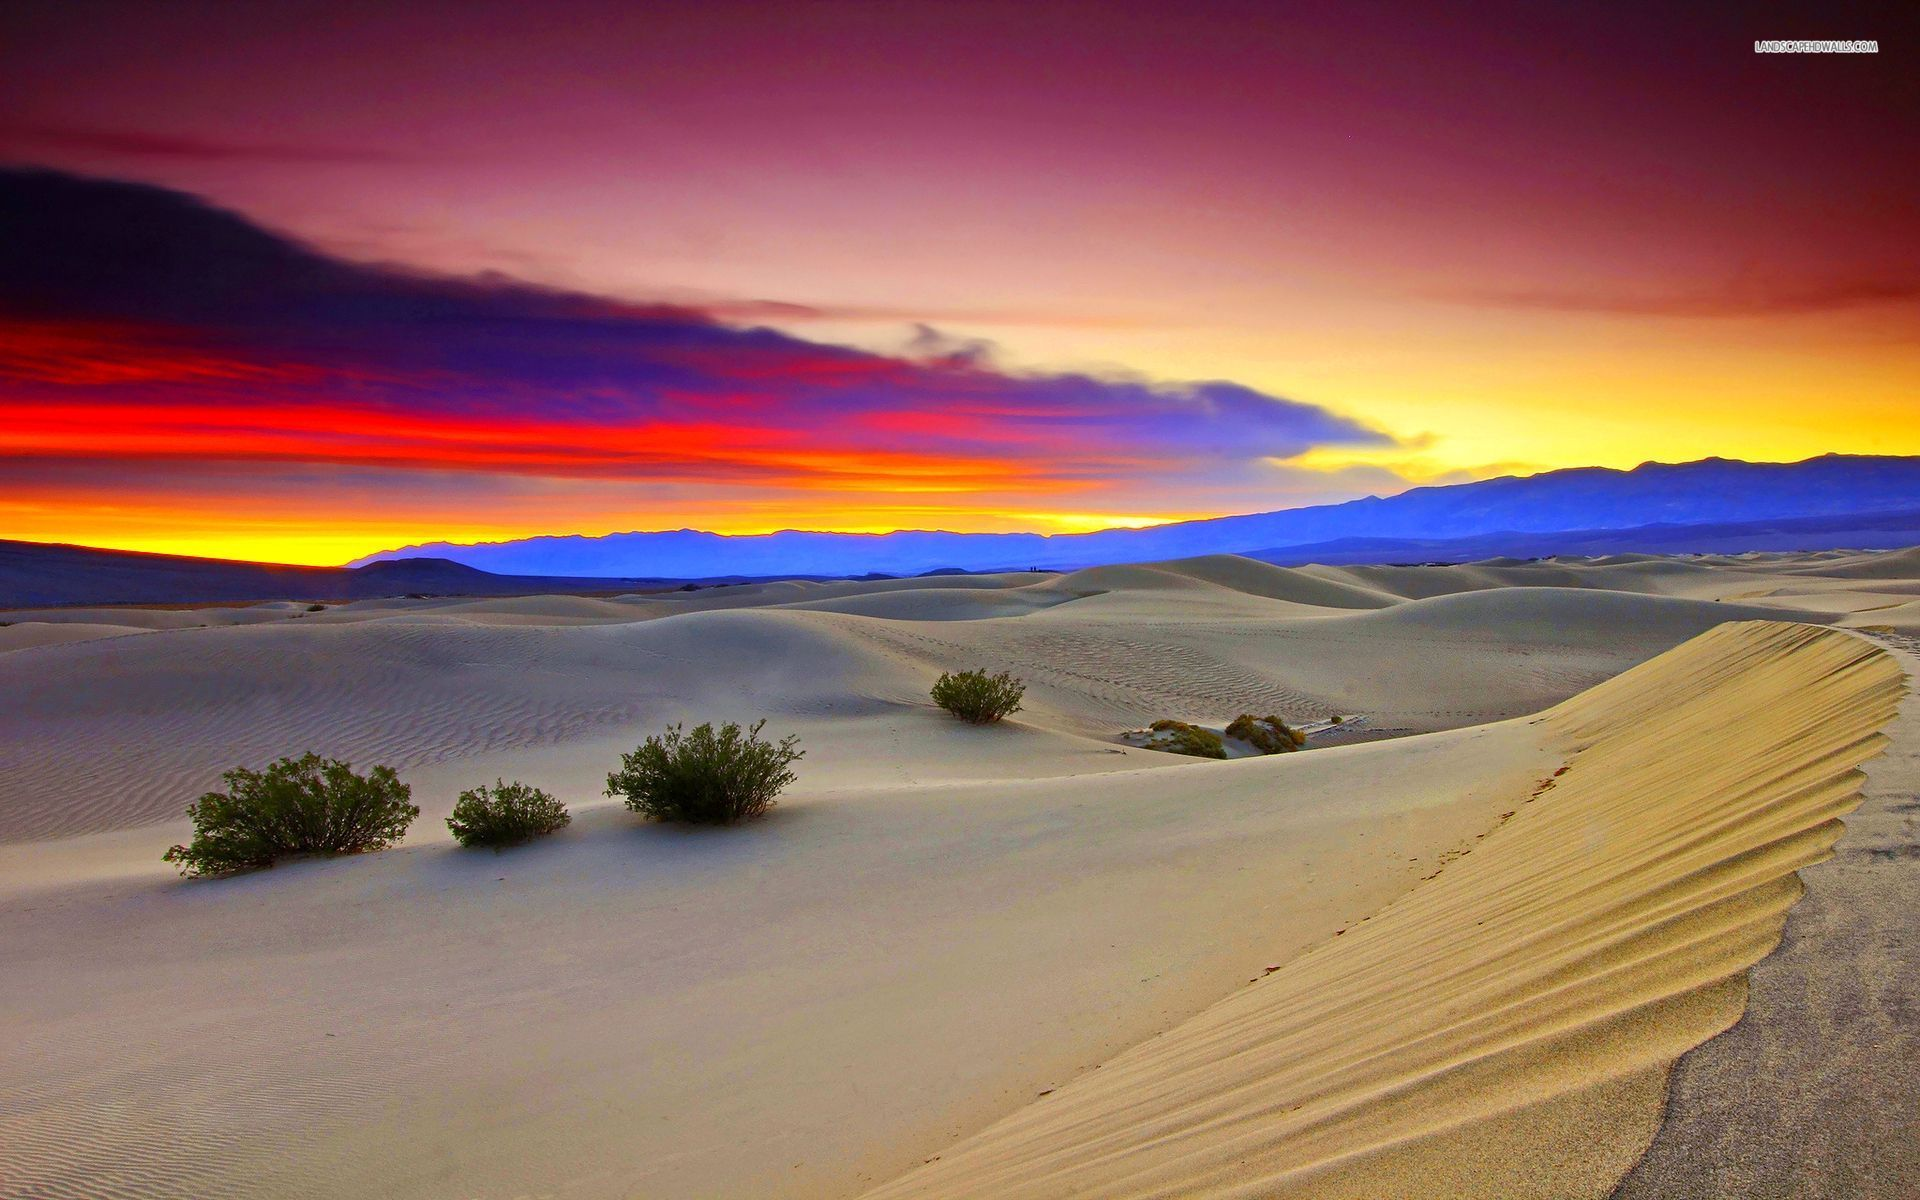 Dusk in the desert wallpaper 1920x1200 Original ...